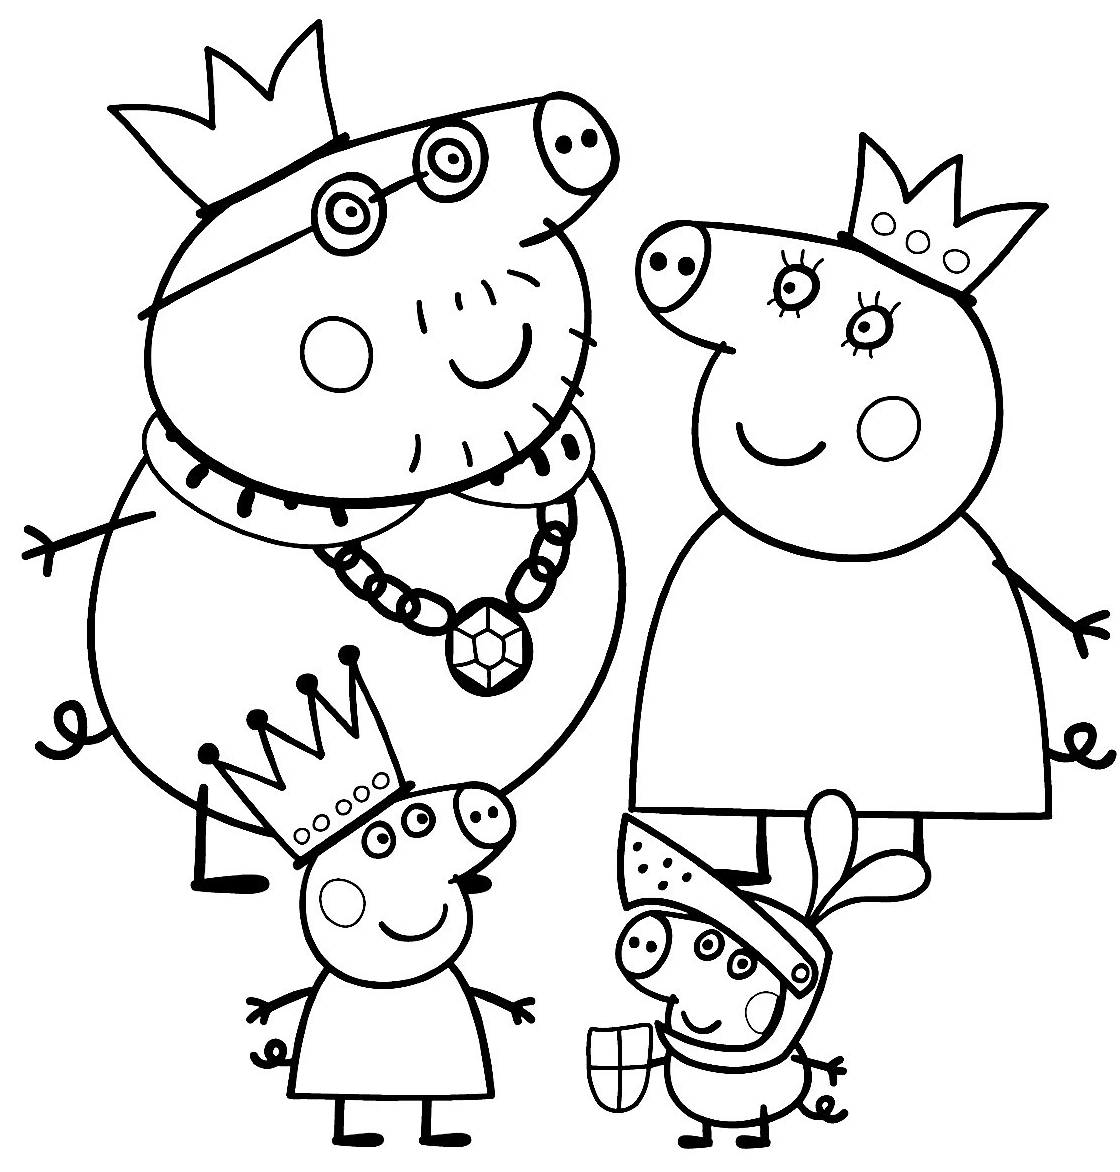 13 Pics of Peppa Pig Family Coloring Pages - Peppa Pig Coloring ...